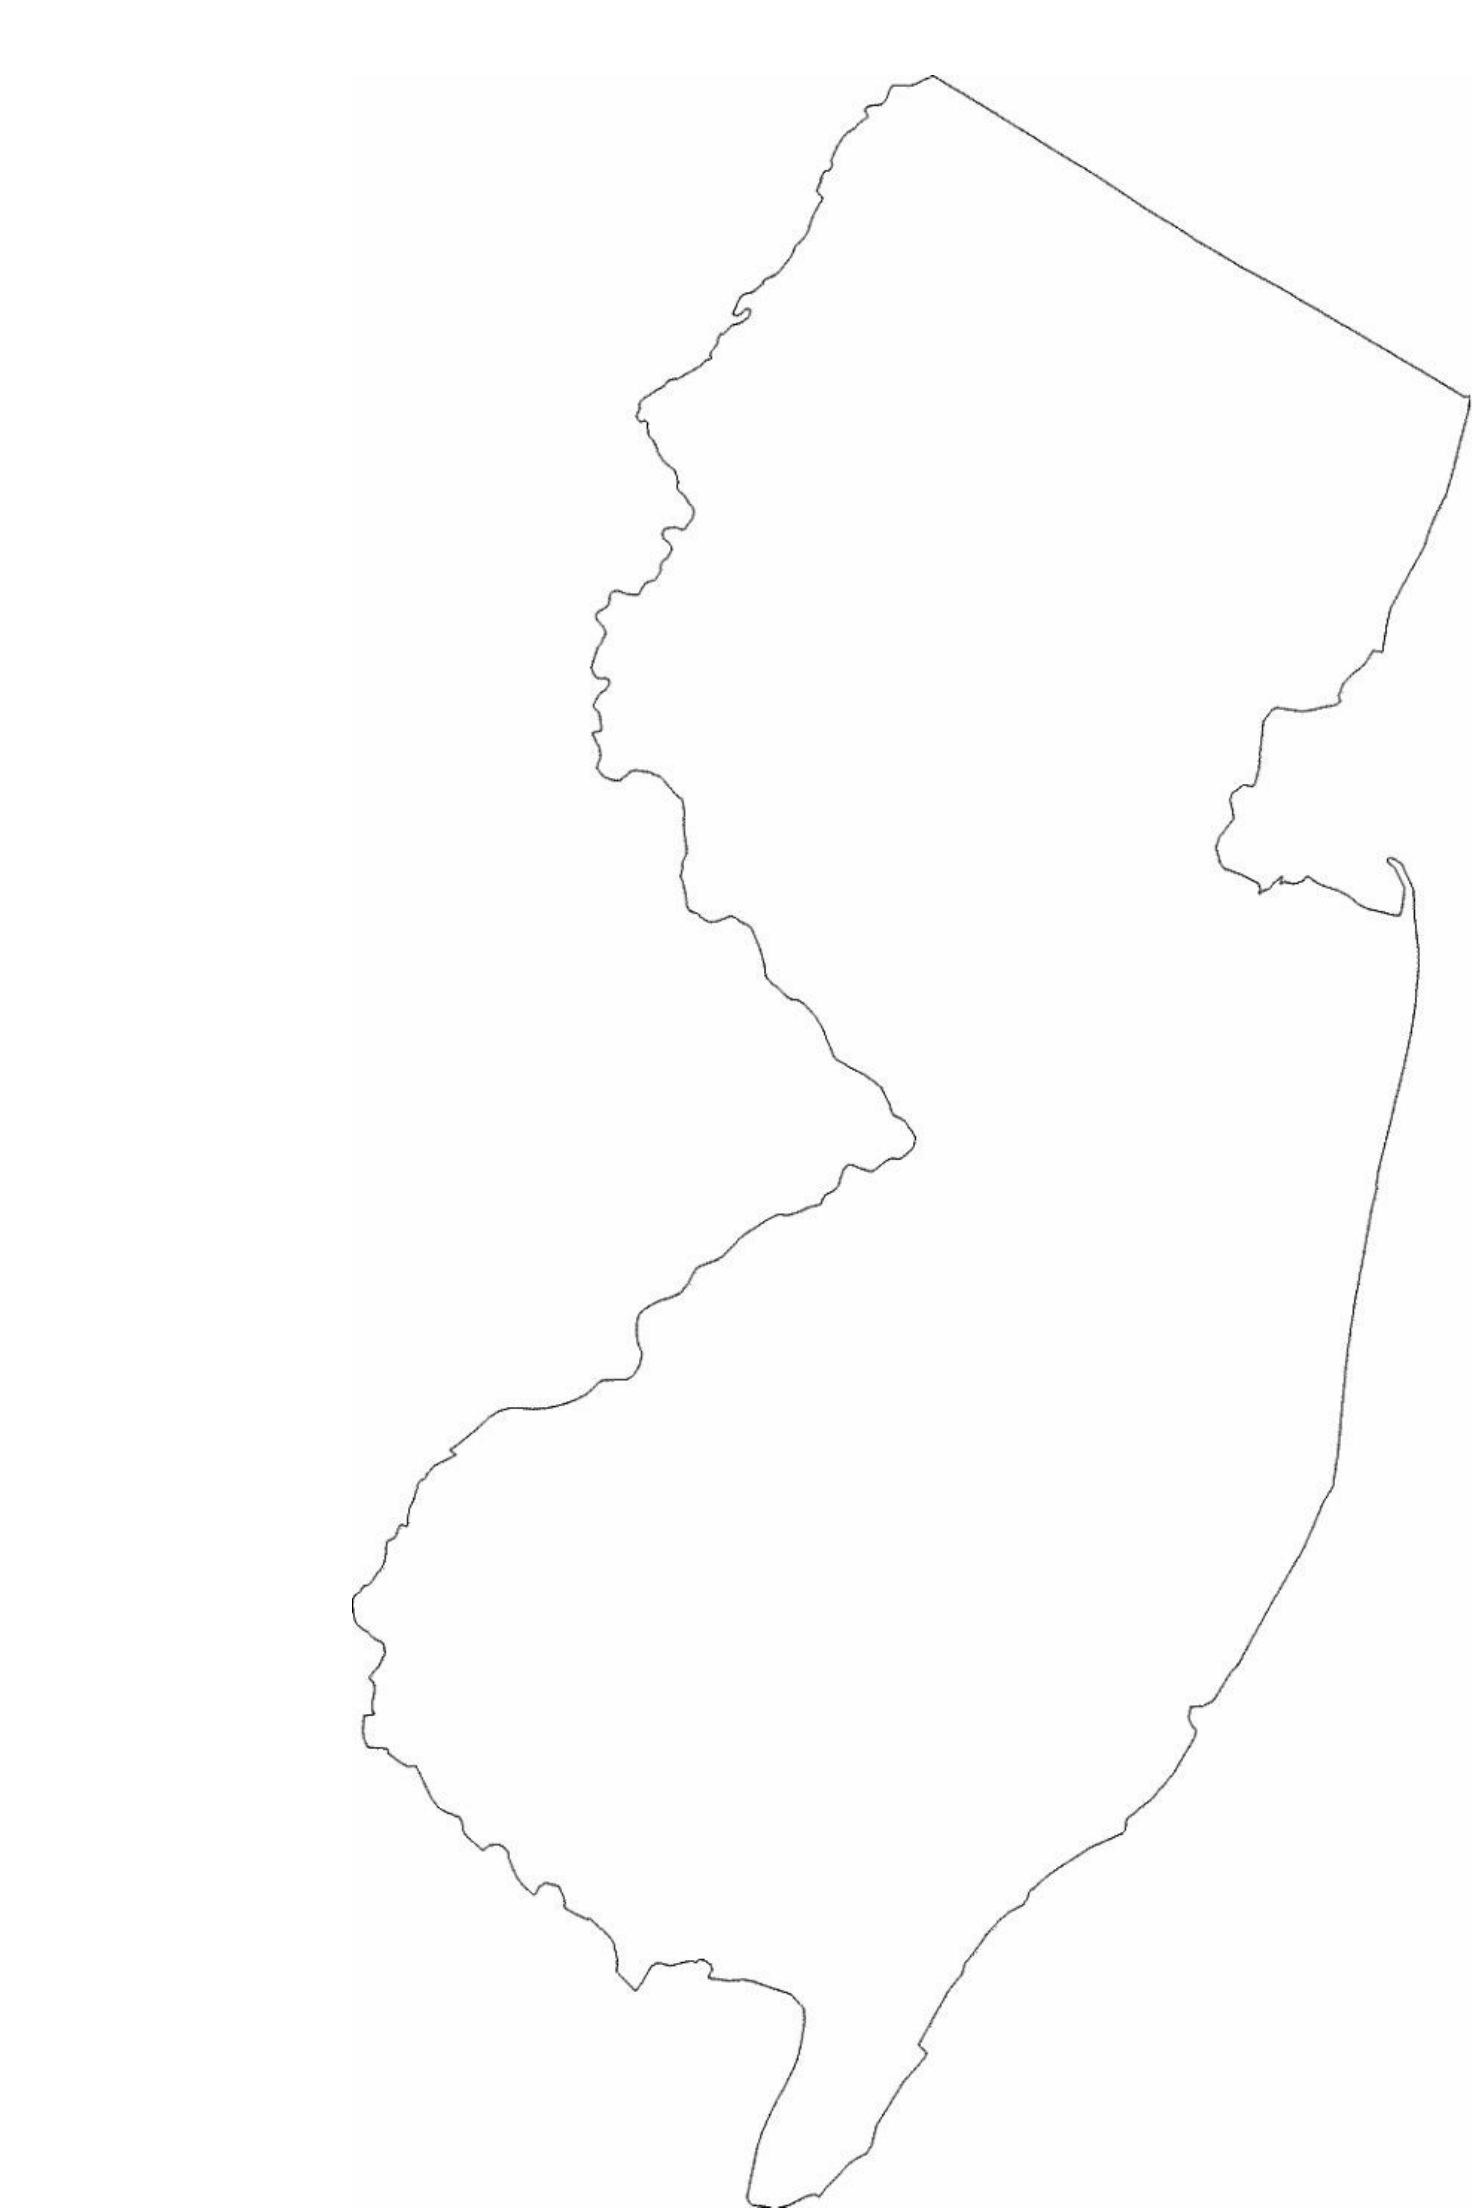 New Jersey State Outline Map Free Download